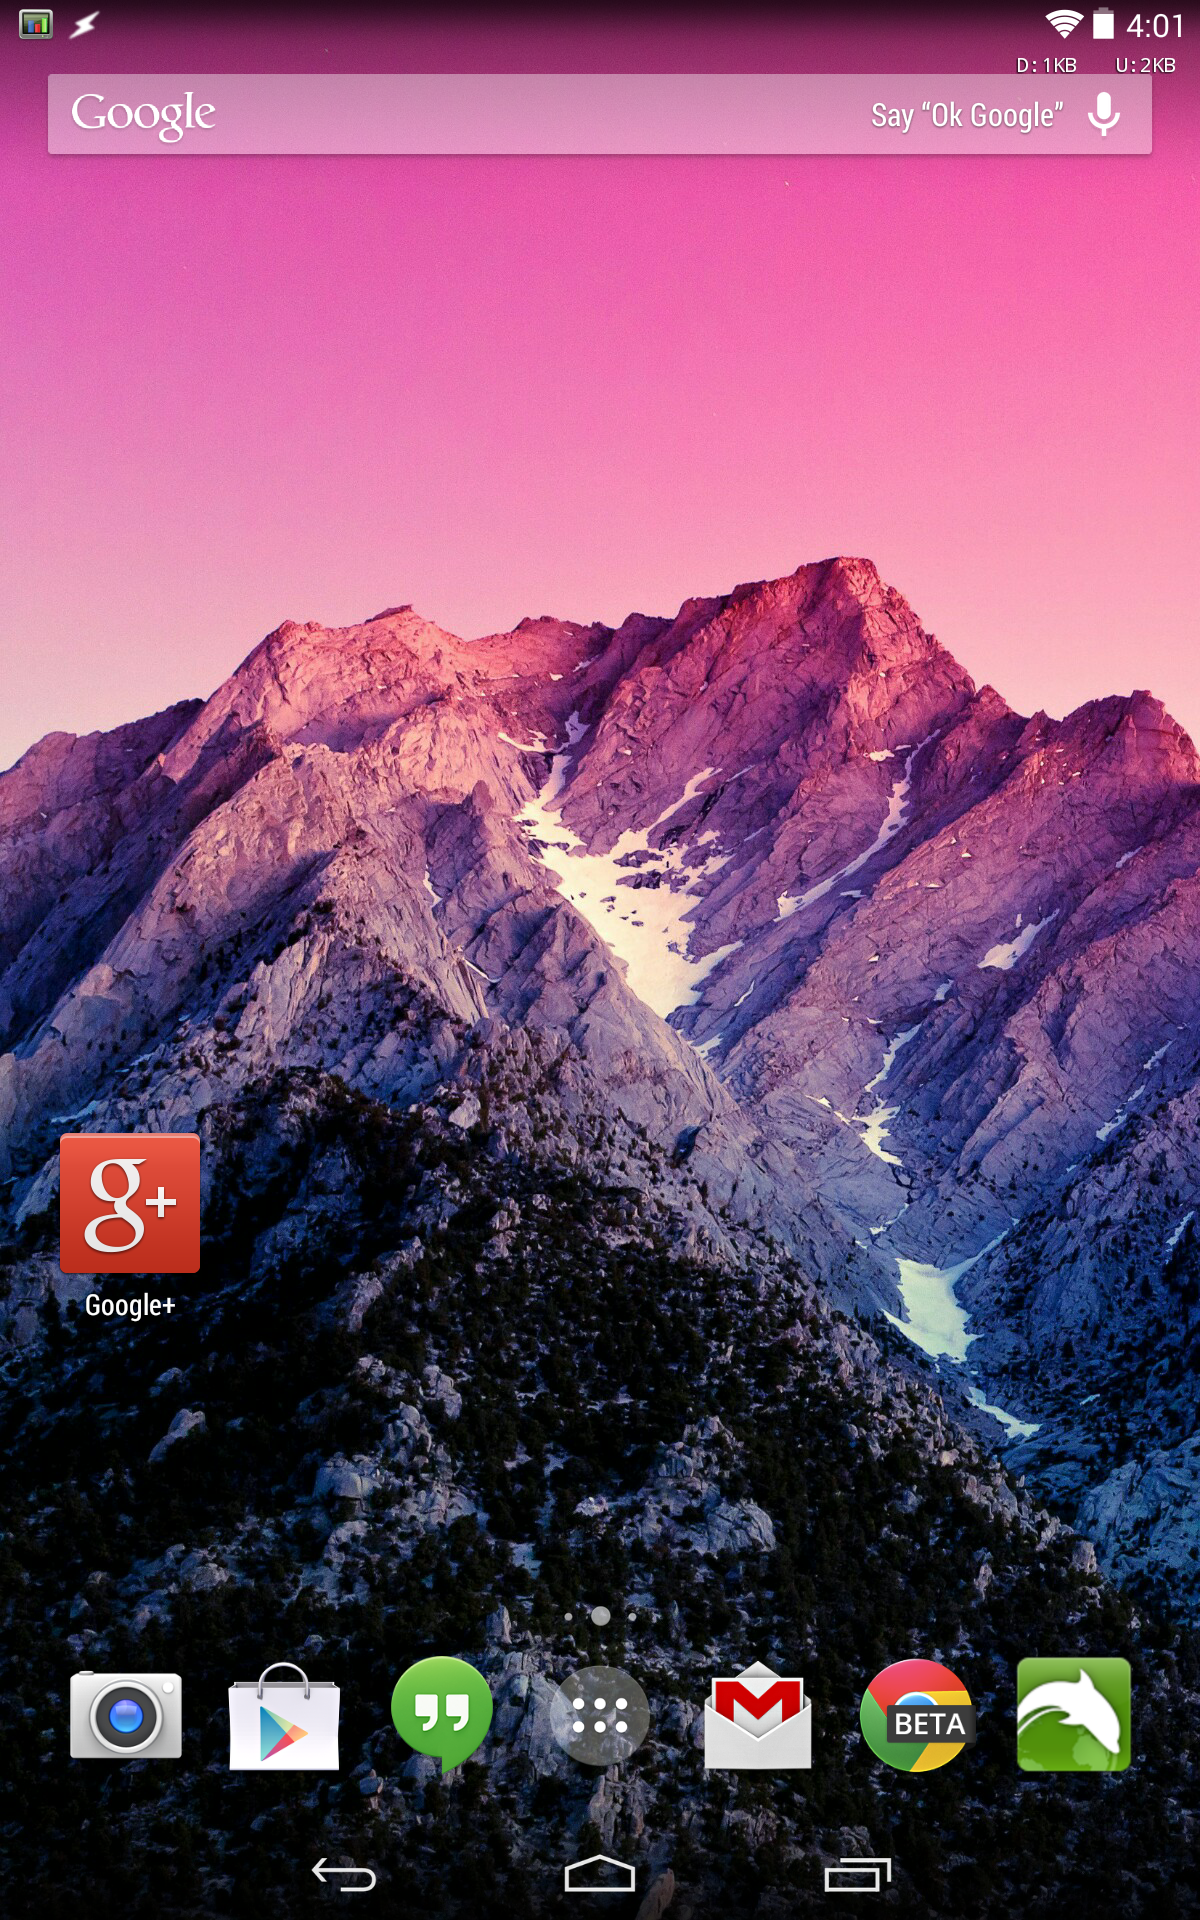 Massive Google Search 3.1.8 Update Rolling Out, Brings Google Experience Launcher To All 4.1+ Devices, New Cards, Completely Fixes GEL On Tablets, And More [APK Download]